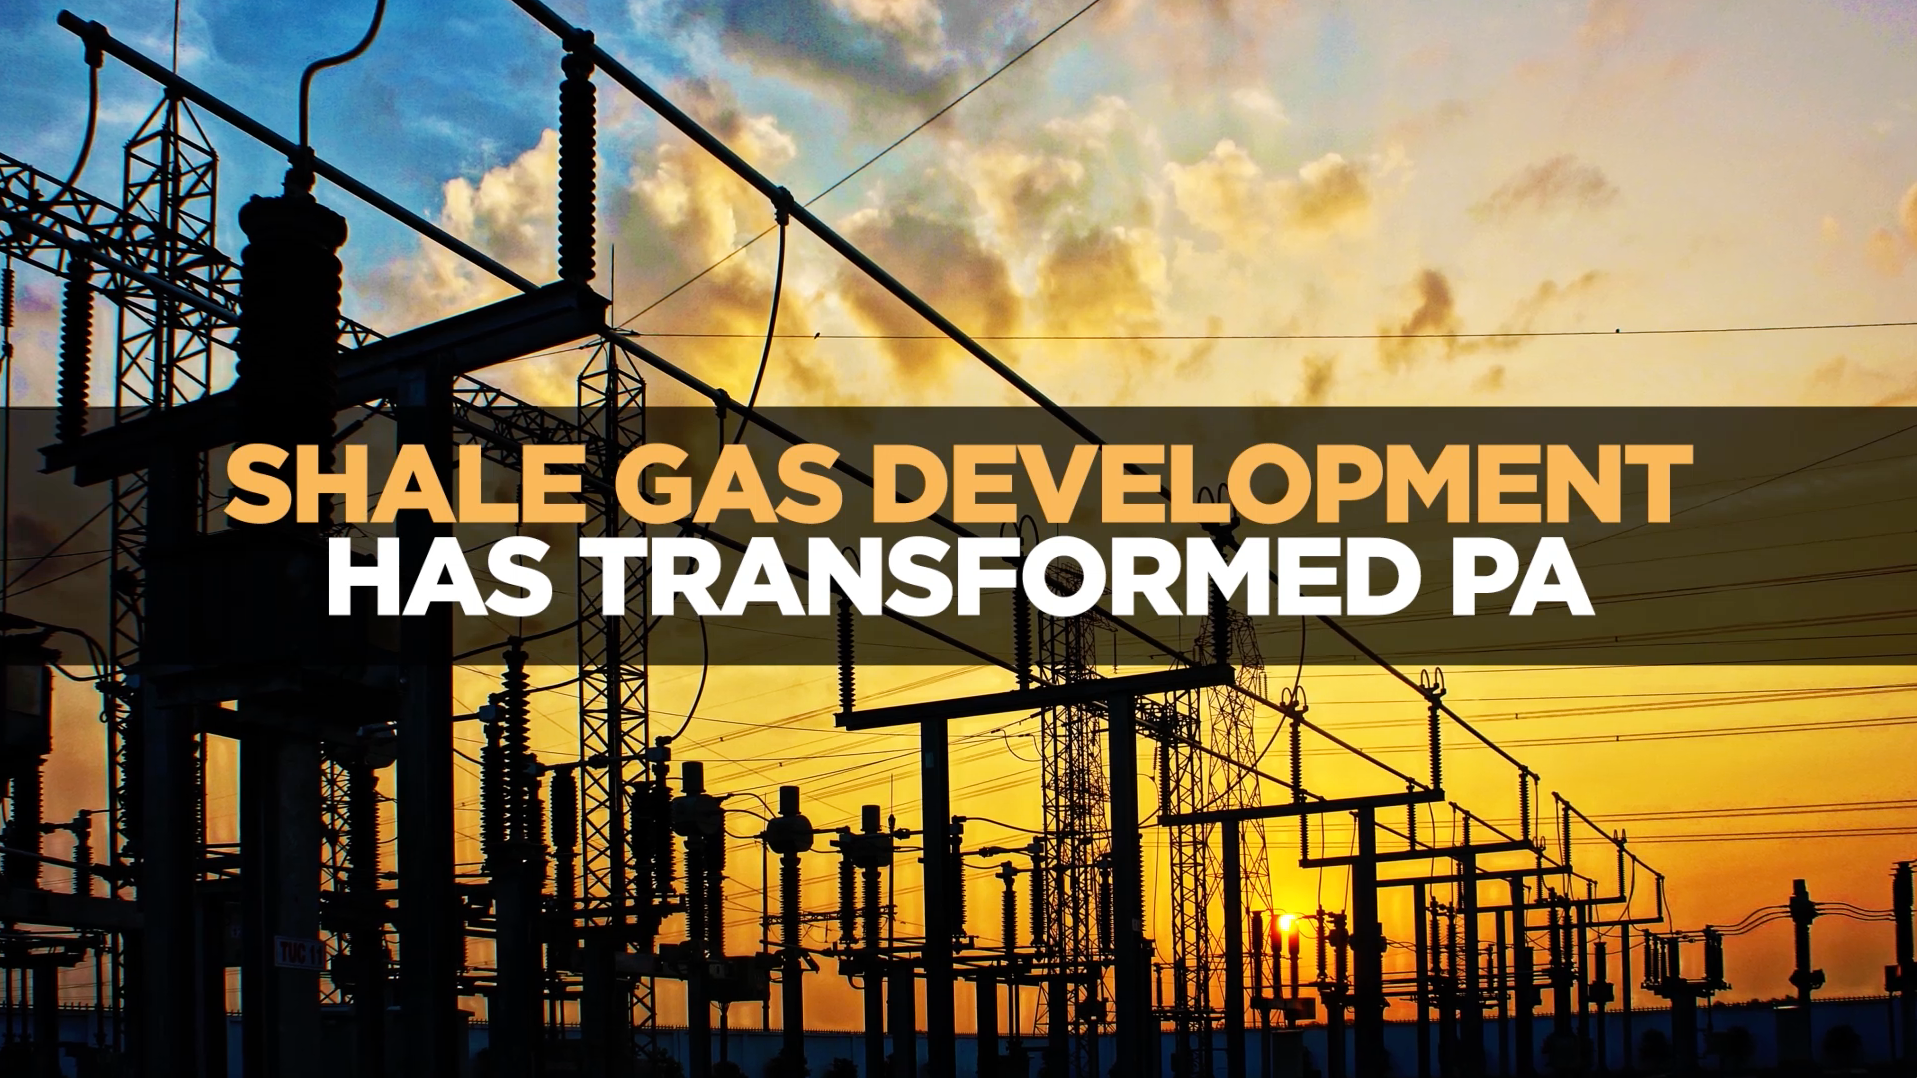 Photo: Shale Gas Development Has Transformed Pa.